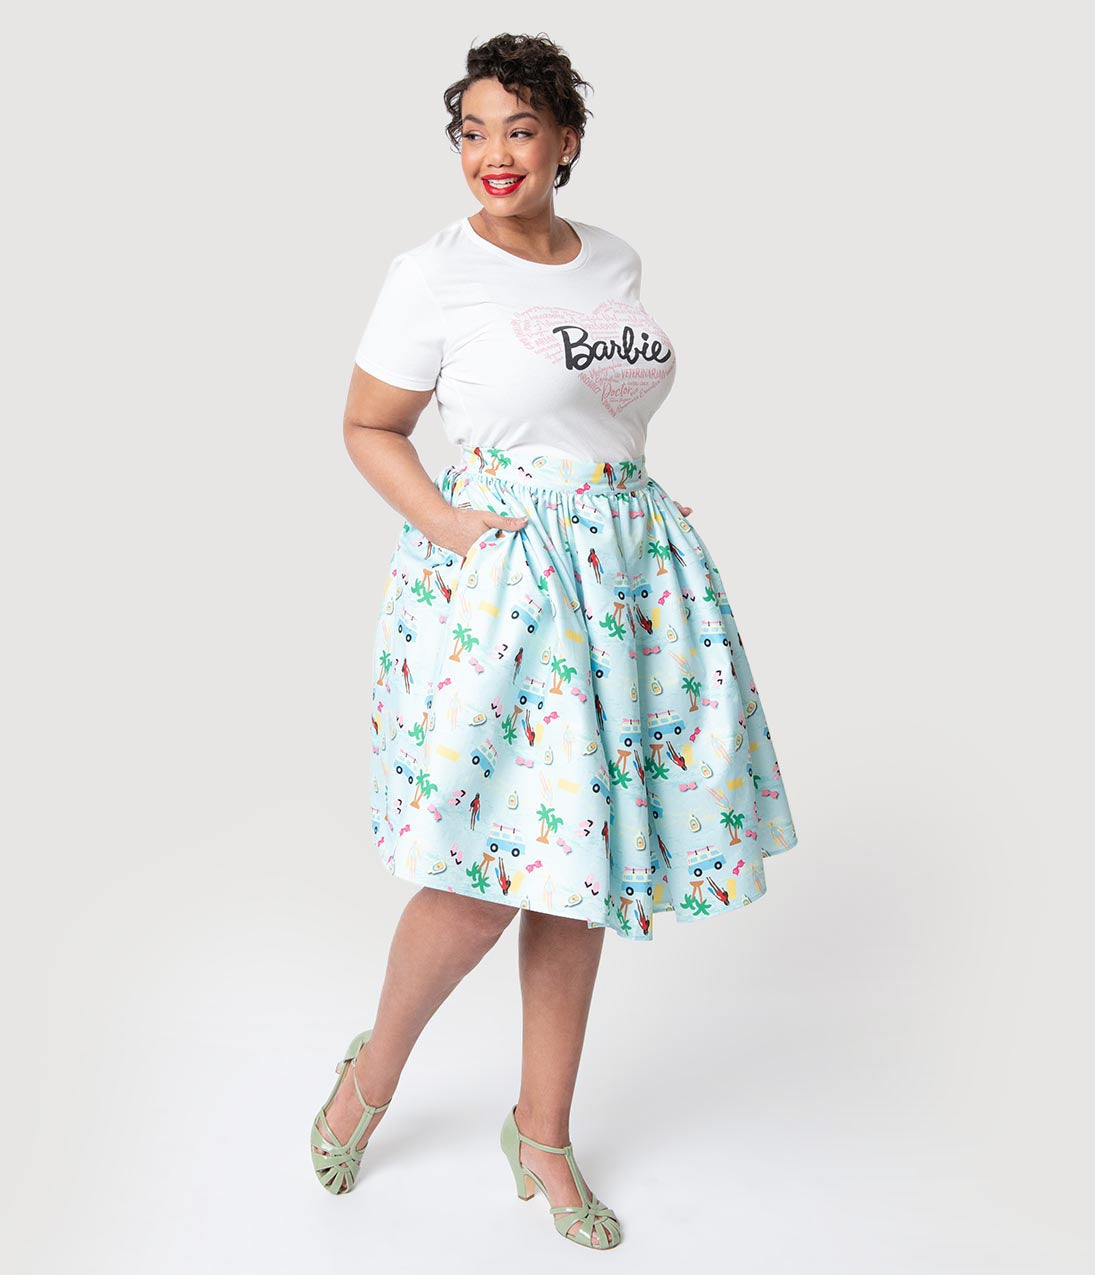 092c478d6f2a Barbie x Unique Vintage Plus Size Light Blue Barbie Vacation Adventure  Swing Skirt